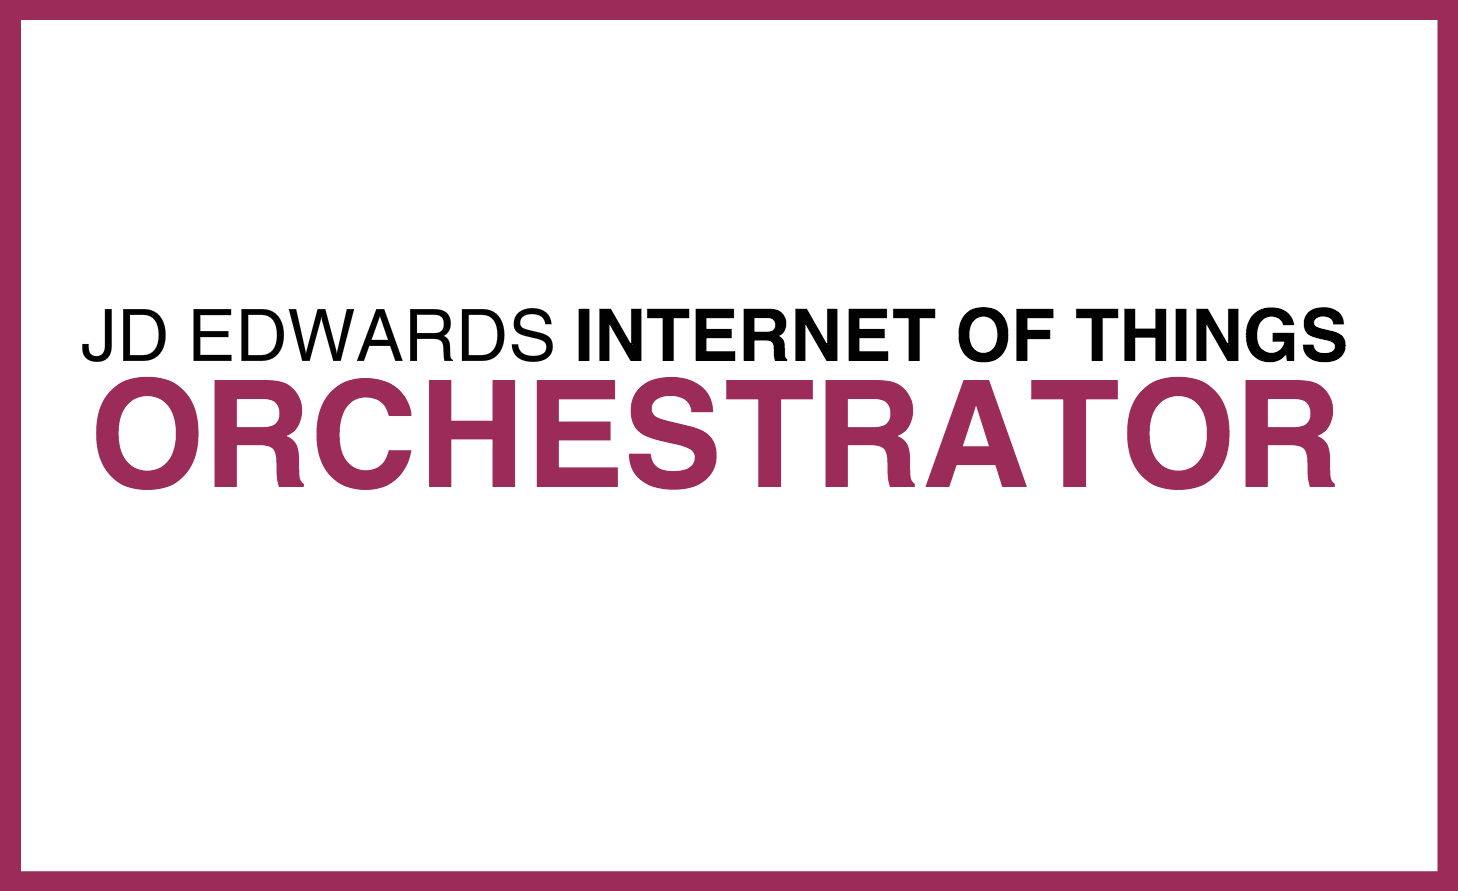 IOT_Orchestrator.png